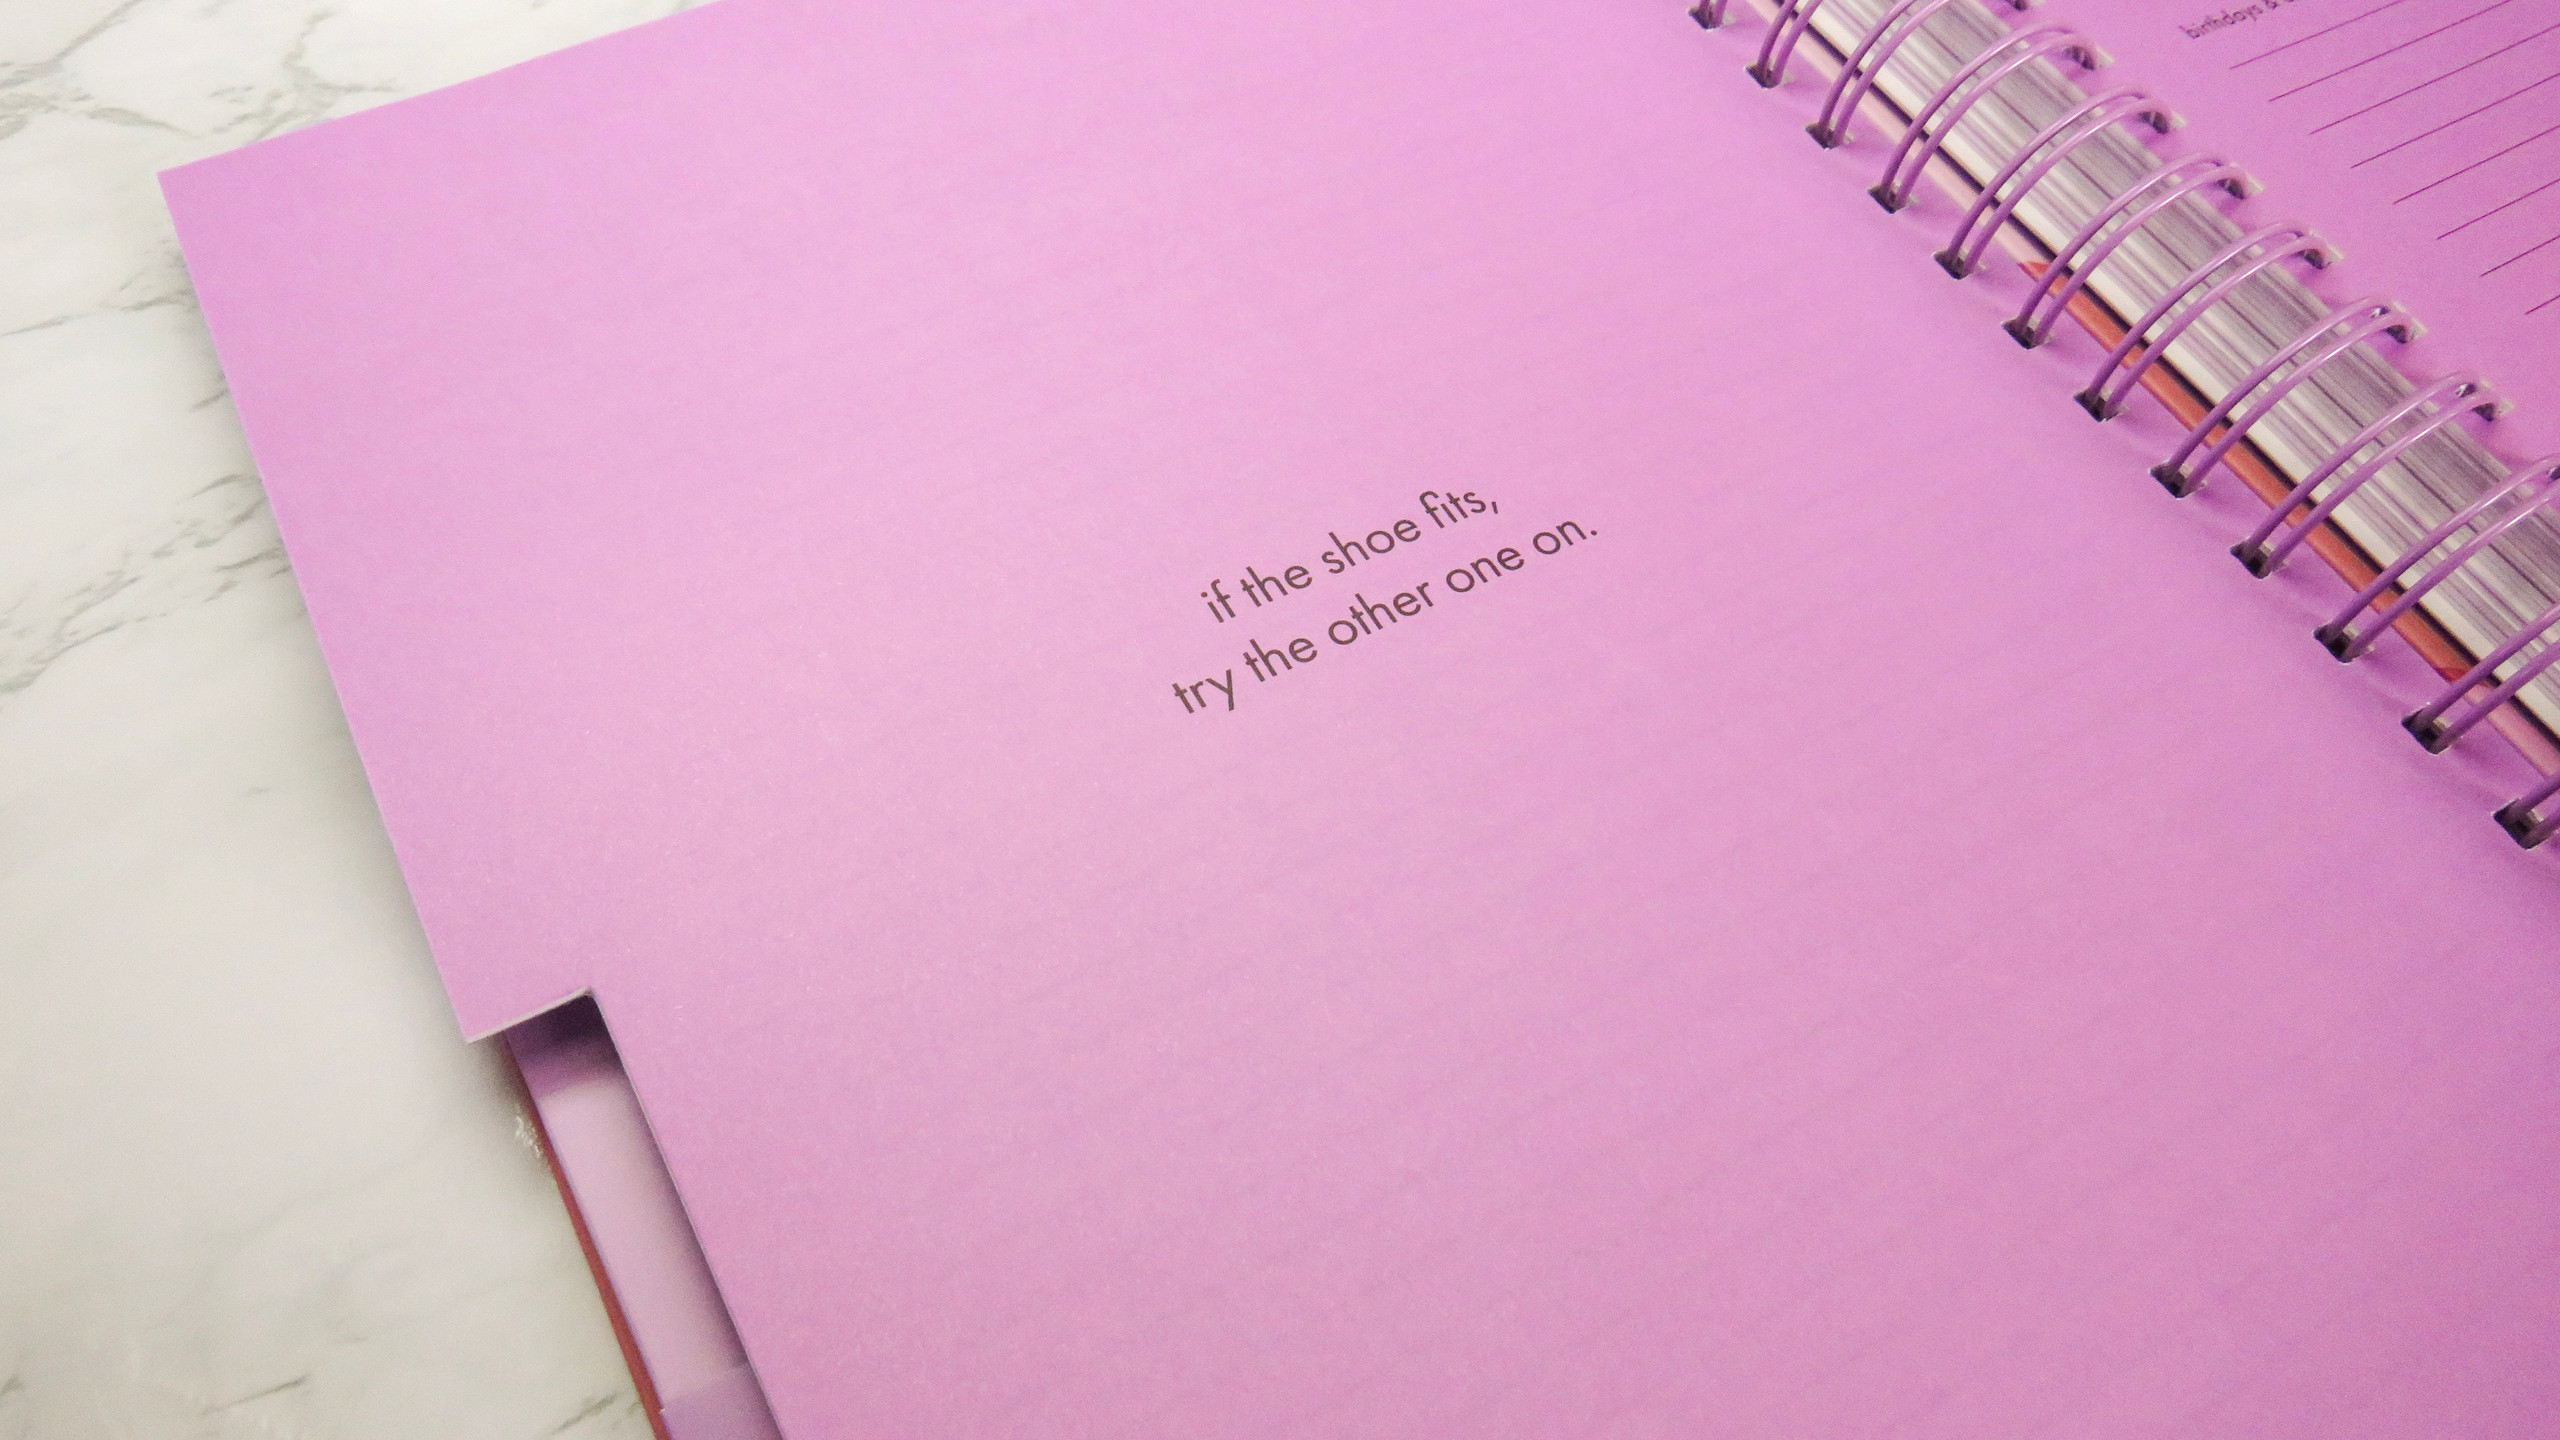 "Left side of a monthly tab divider with a quote: ""If the shoe fits, try the other one on"" in the Kate Spade New York planner."